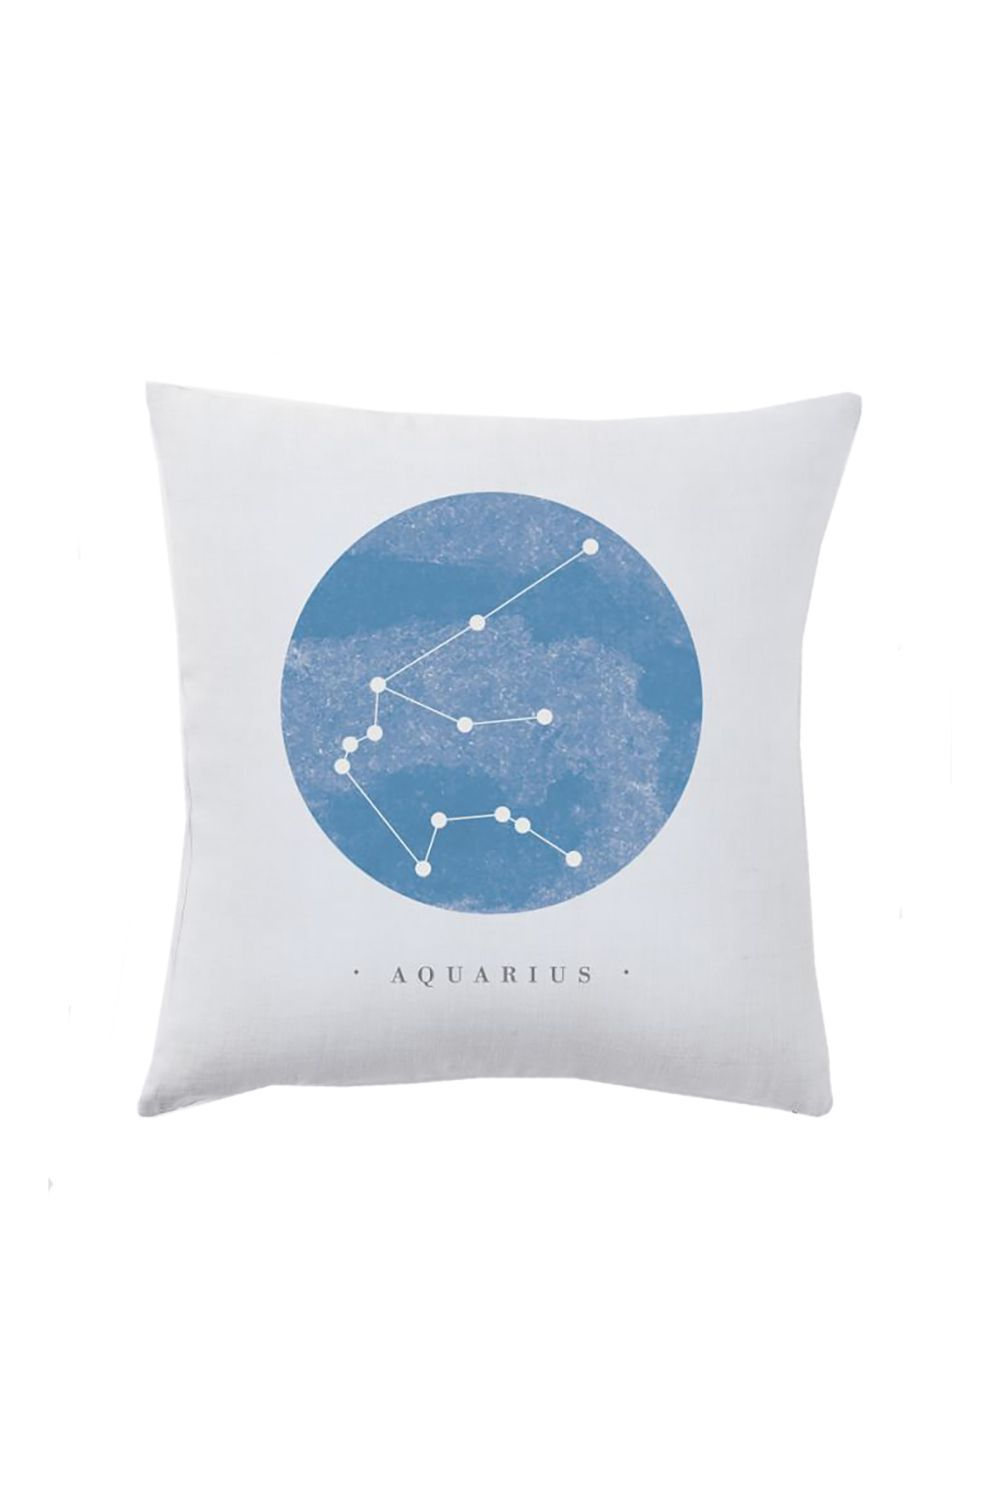 Astrological Pillow Cover West Elm $14.00 SHOP IT When she's not ready to commit to adding a new decorative pillow to her home (and you don't want to gift her something she won't use), a cute astrological pillow cover allows her to swap 'em out whenever she pleases.